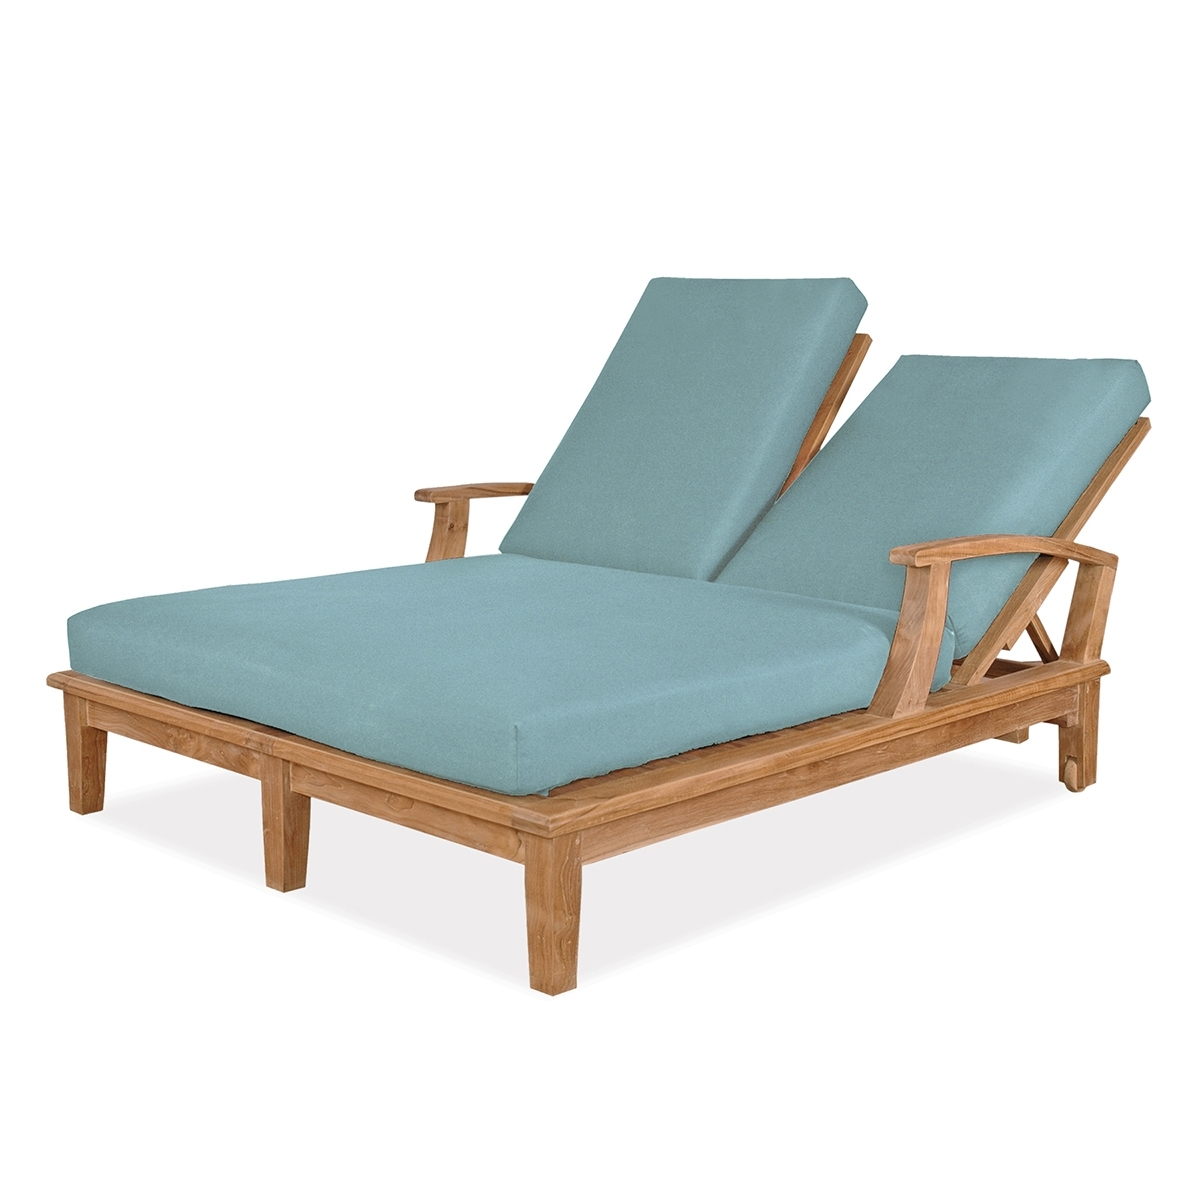 Newest Chaise Lounge Chairs For Pool Area With Lounge Chair : Chaise Long Outdoor Sofa Chaise Lounge White (View 11 of 15)